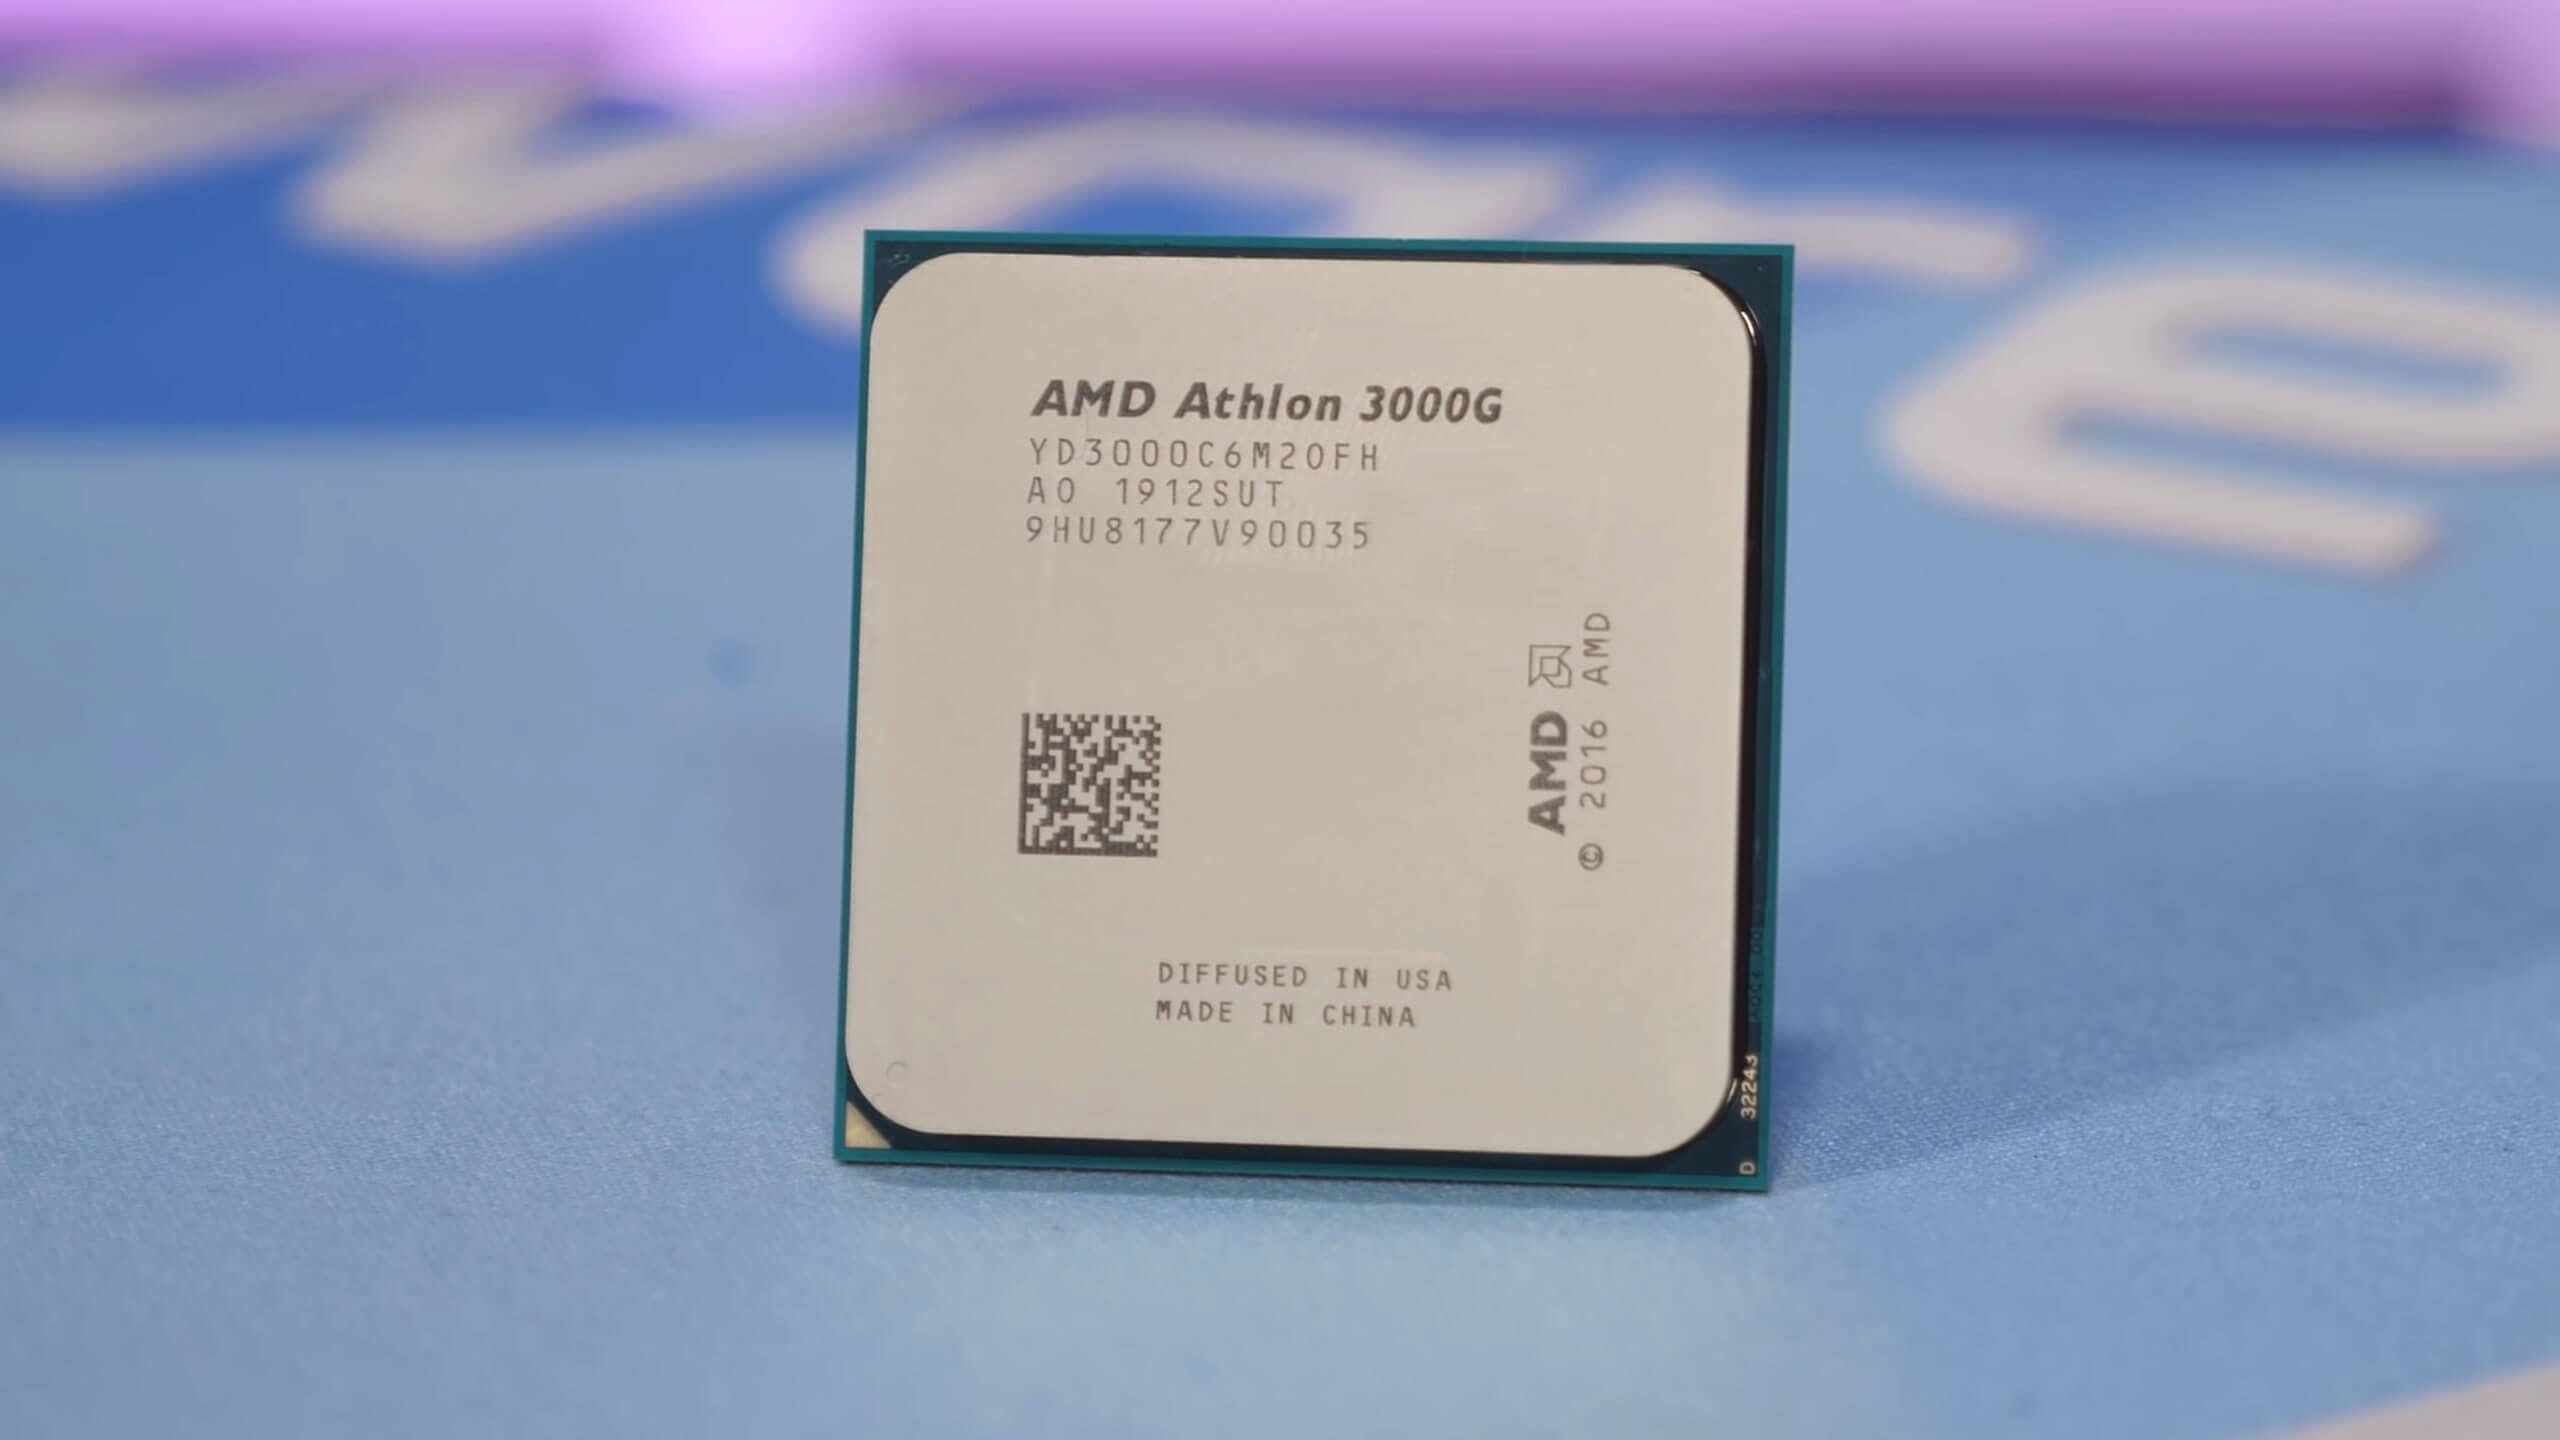 AMD Athlon 3000G Review: An Unlocked $50 CPU - TechSpot